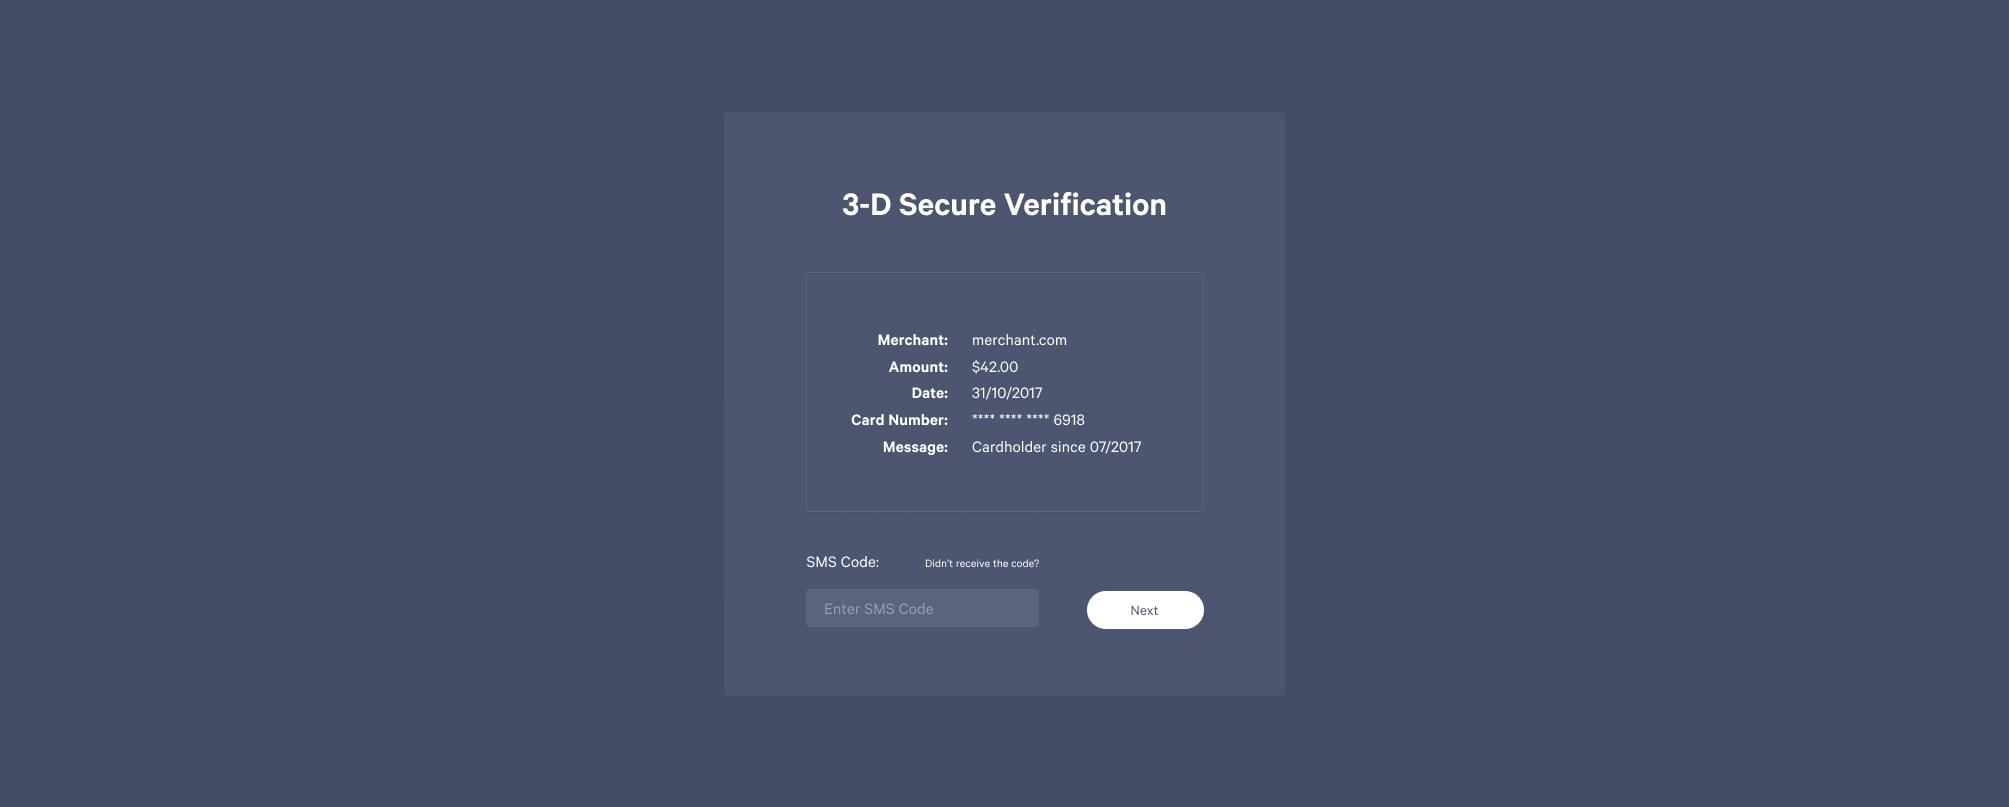 All about 3-D Secure and 3-D Secure 2 0 | Clearhaus Blog